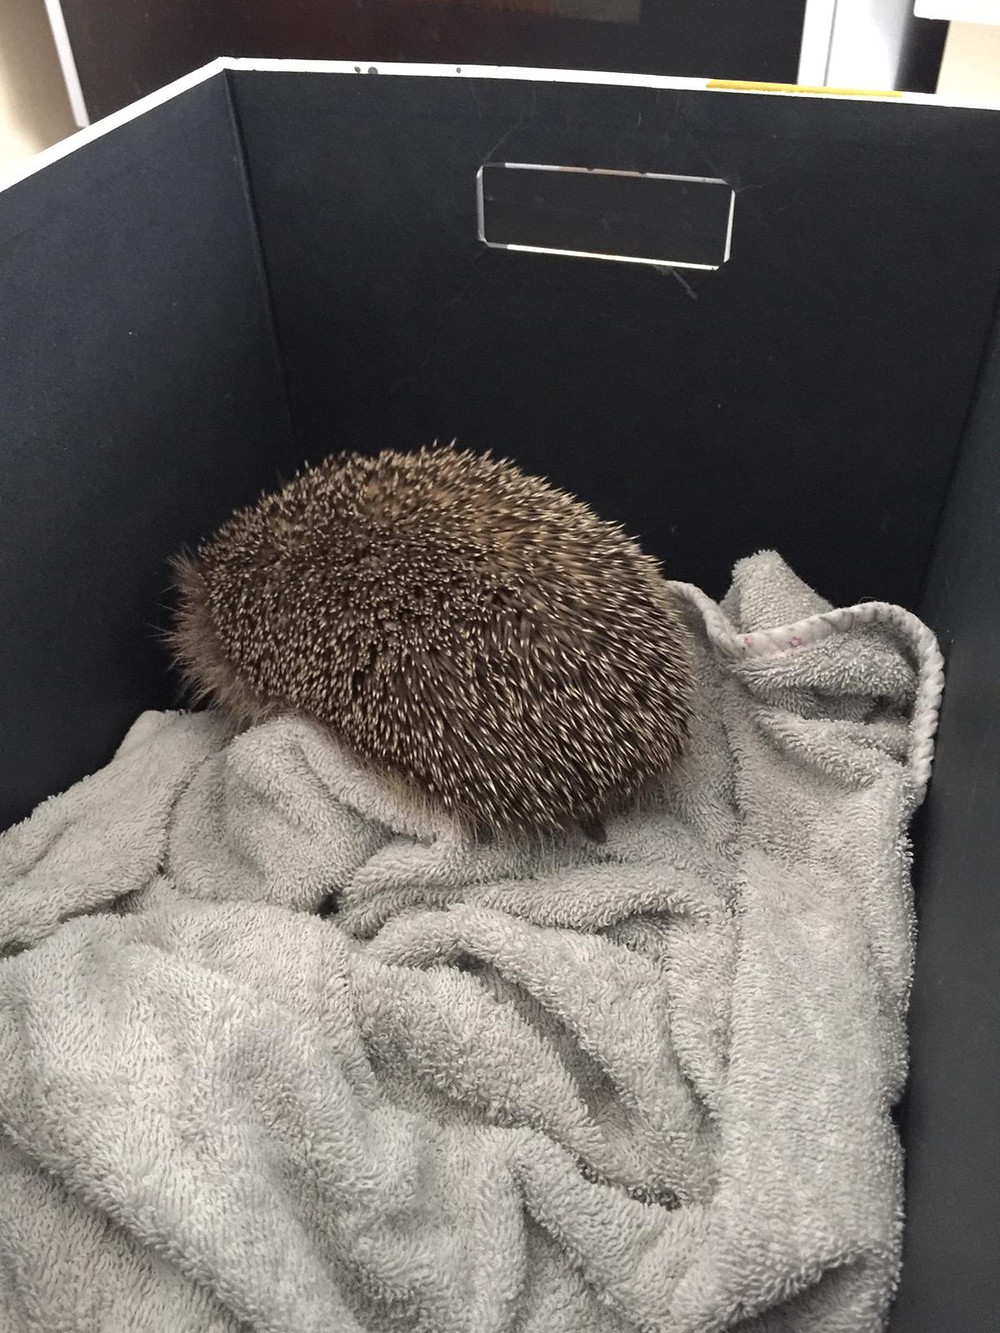 Hedgehog inside a box